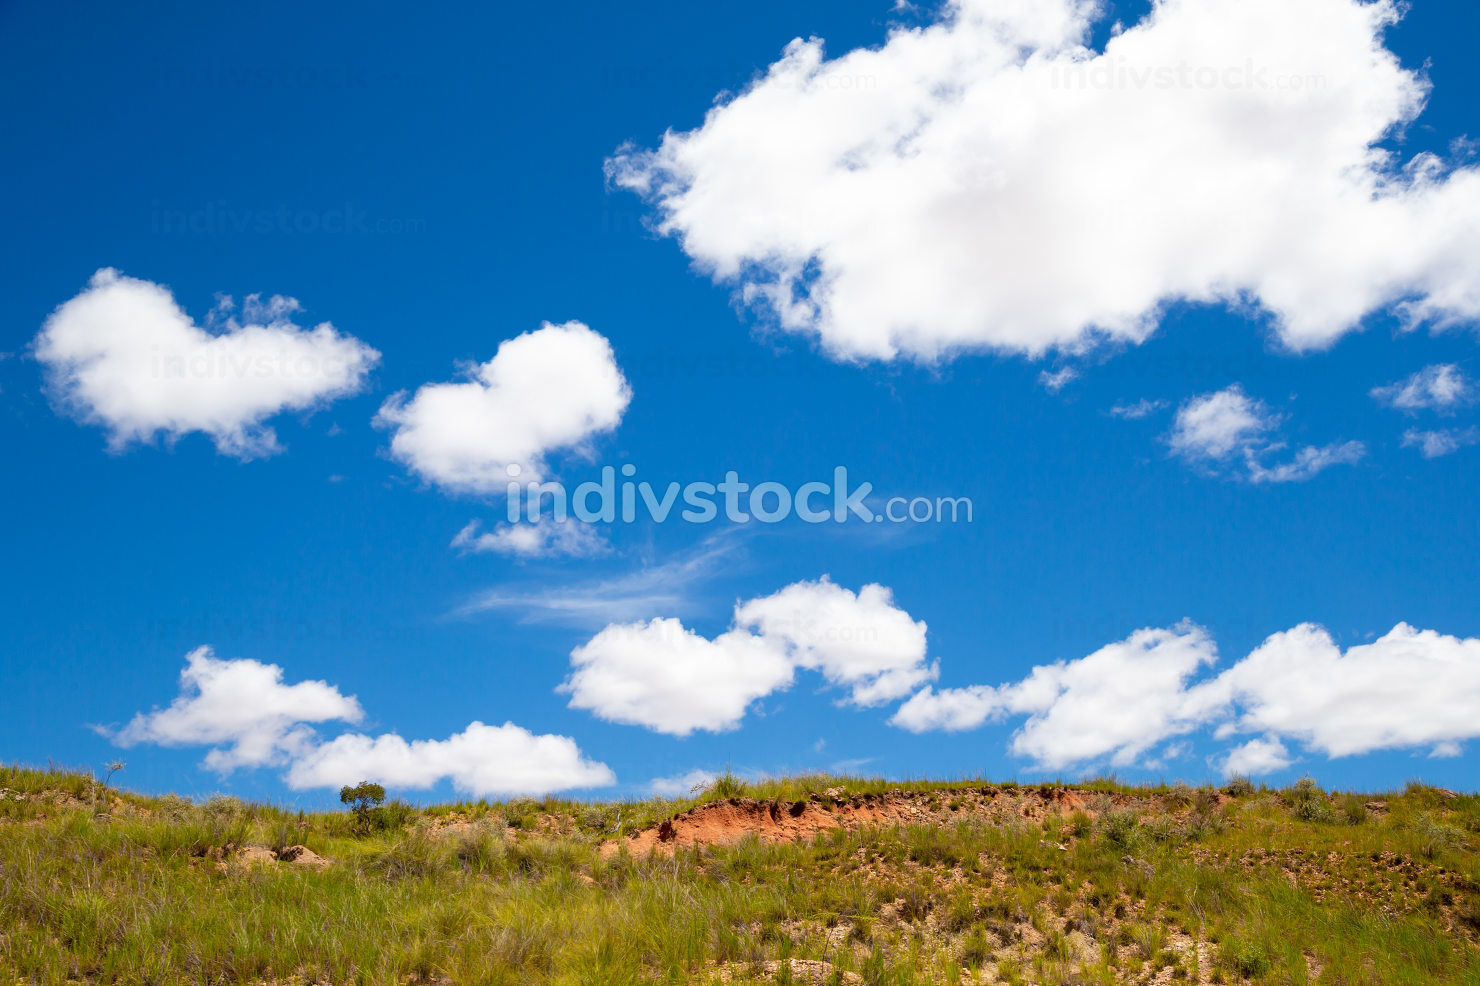 Landscape pictures of the country of Madagascar, with mountains